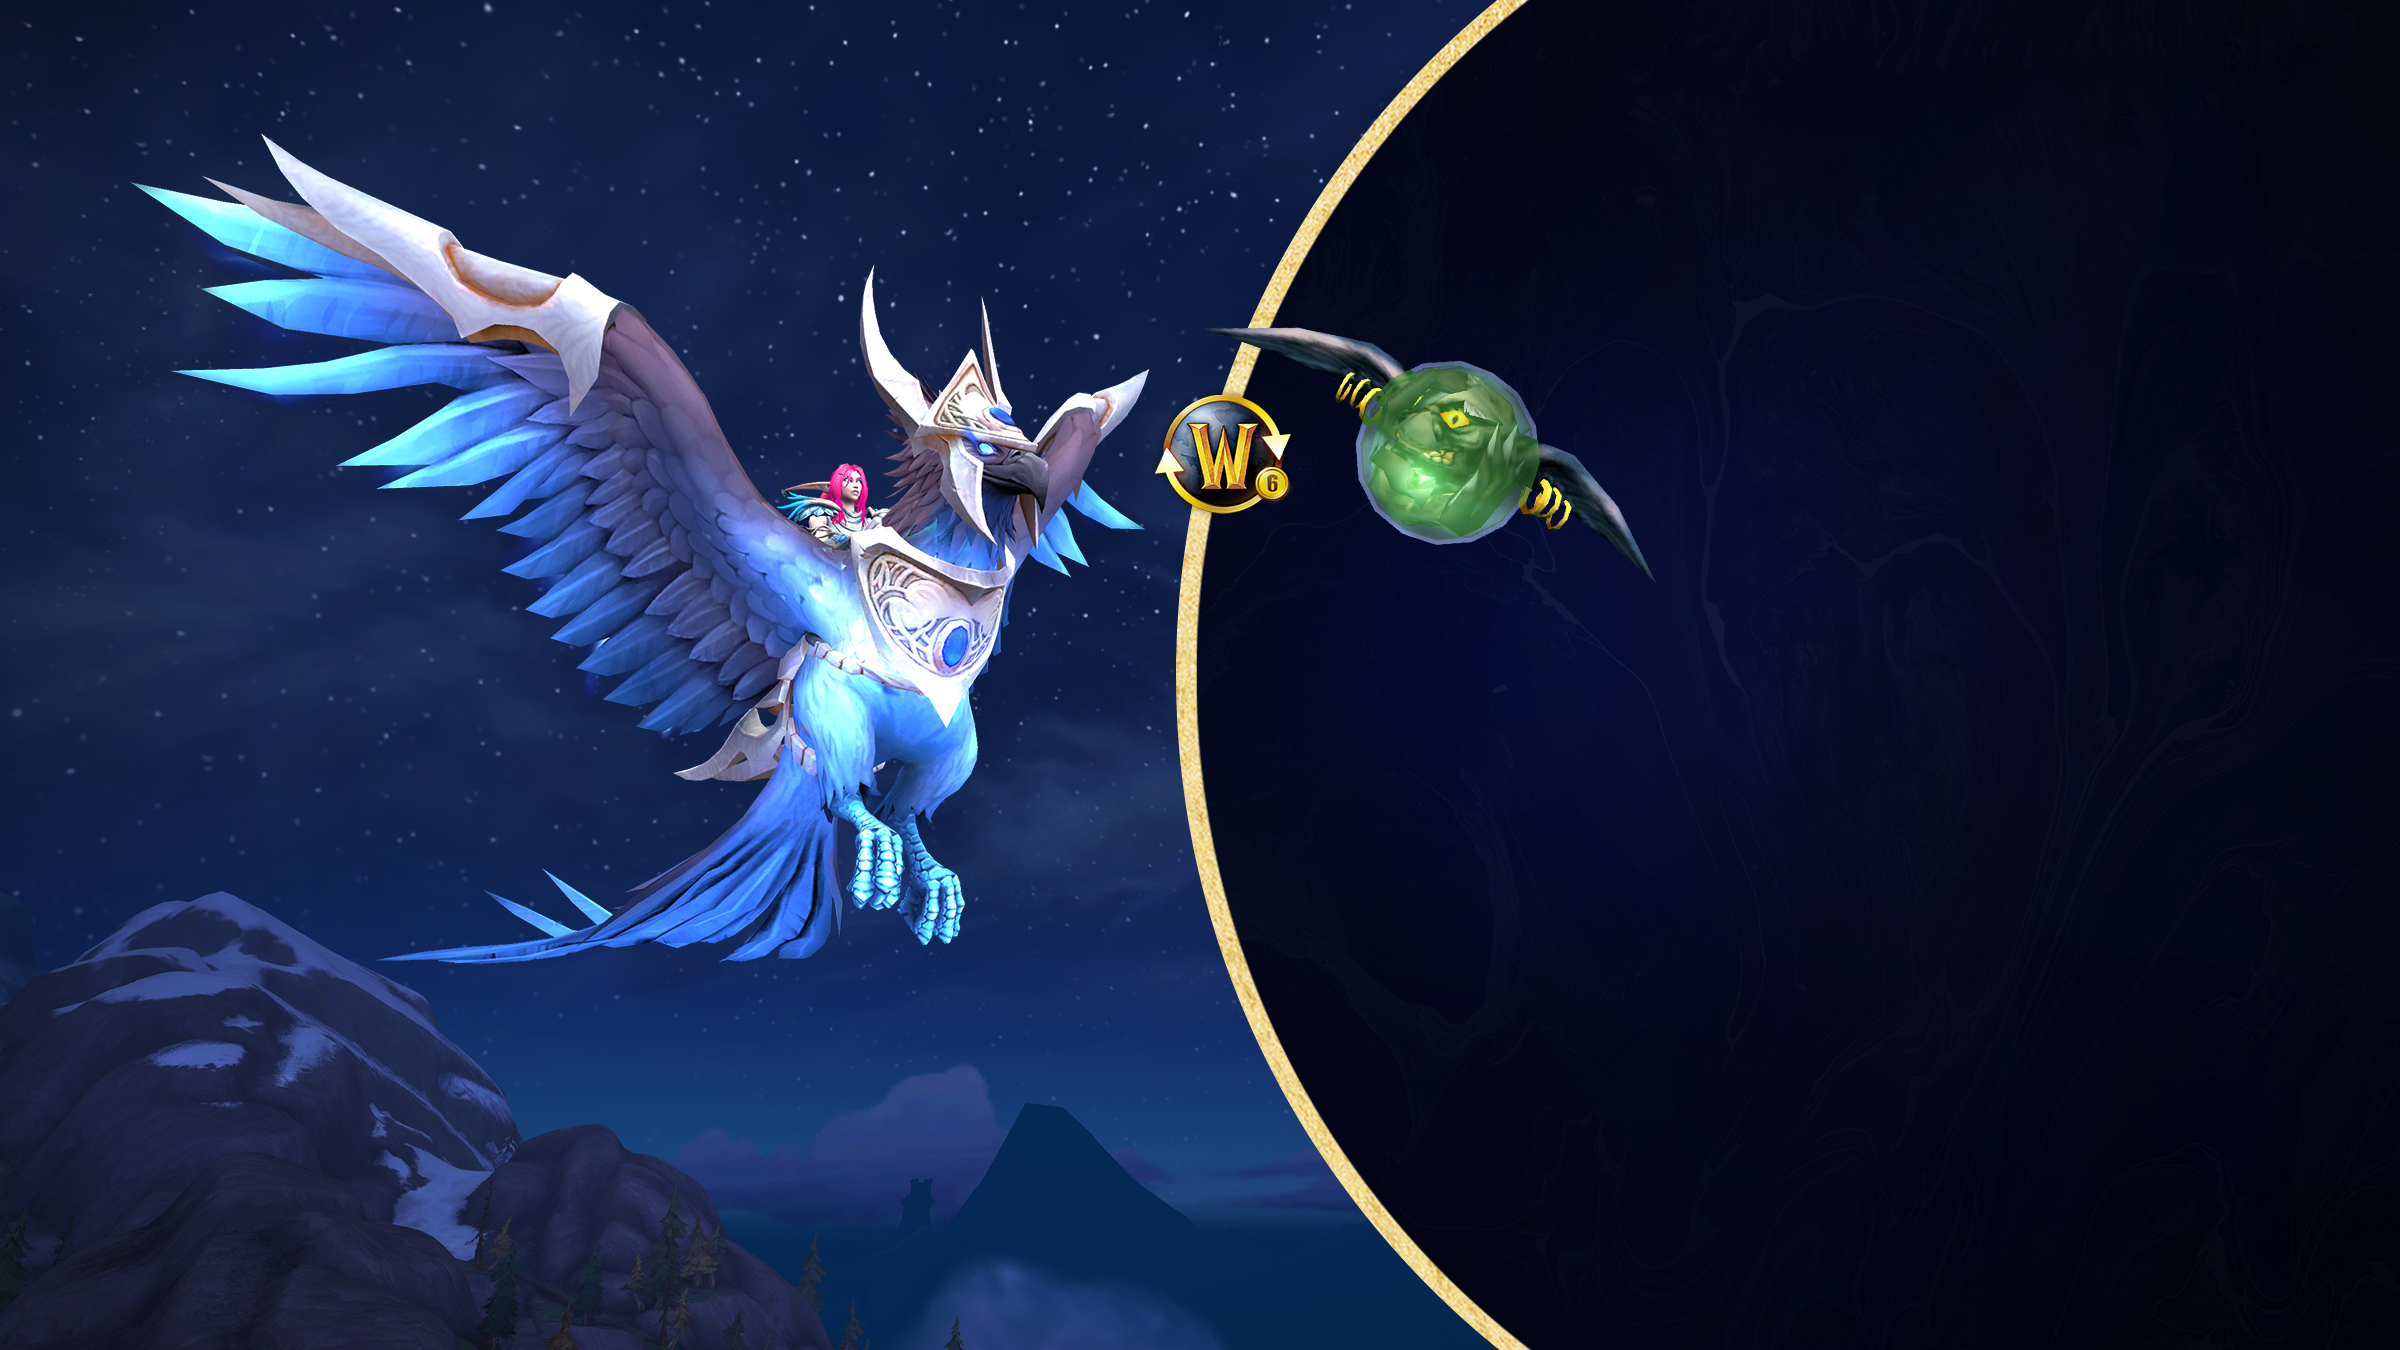 Get the New Sapphire Skyblazer Mount with the Purchase of a 6 Month Subscription!